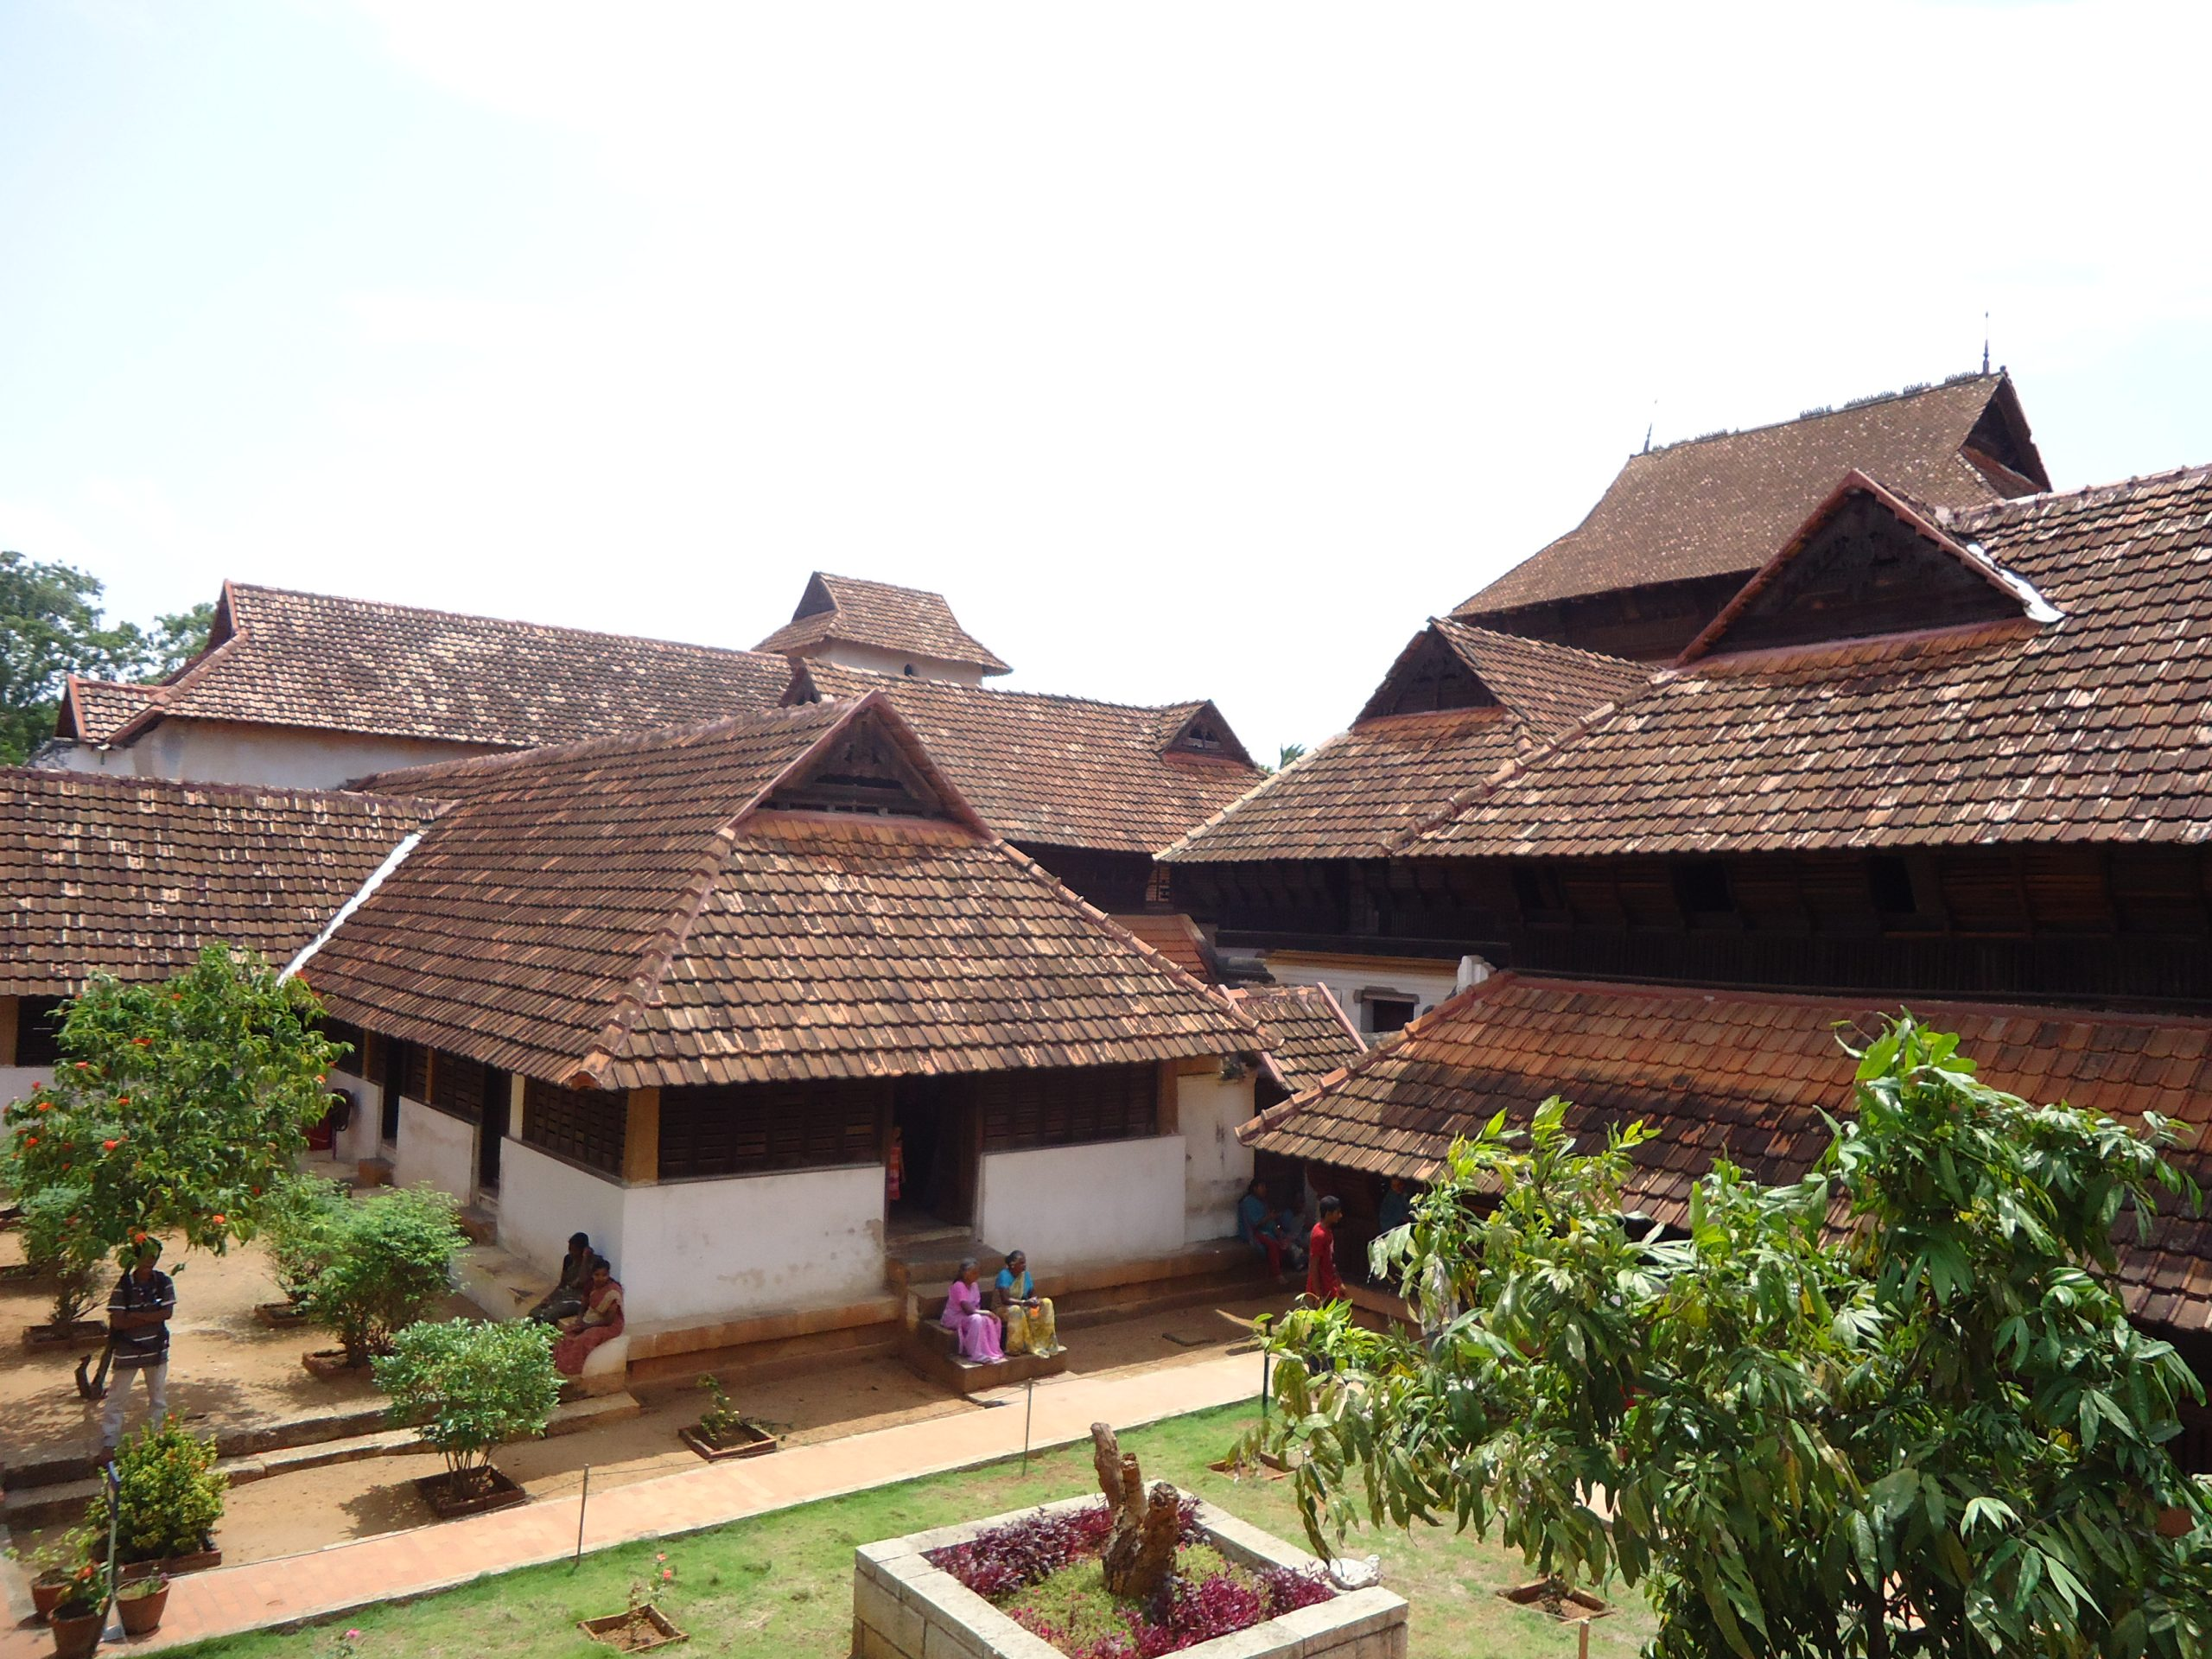 Old style houses in Kerala.